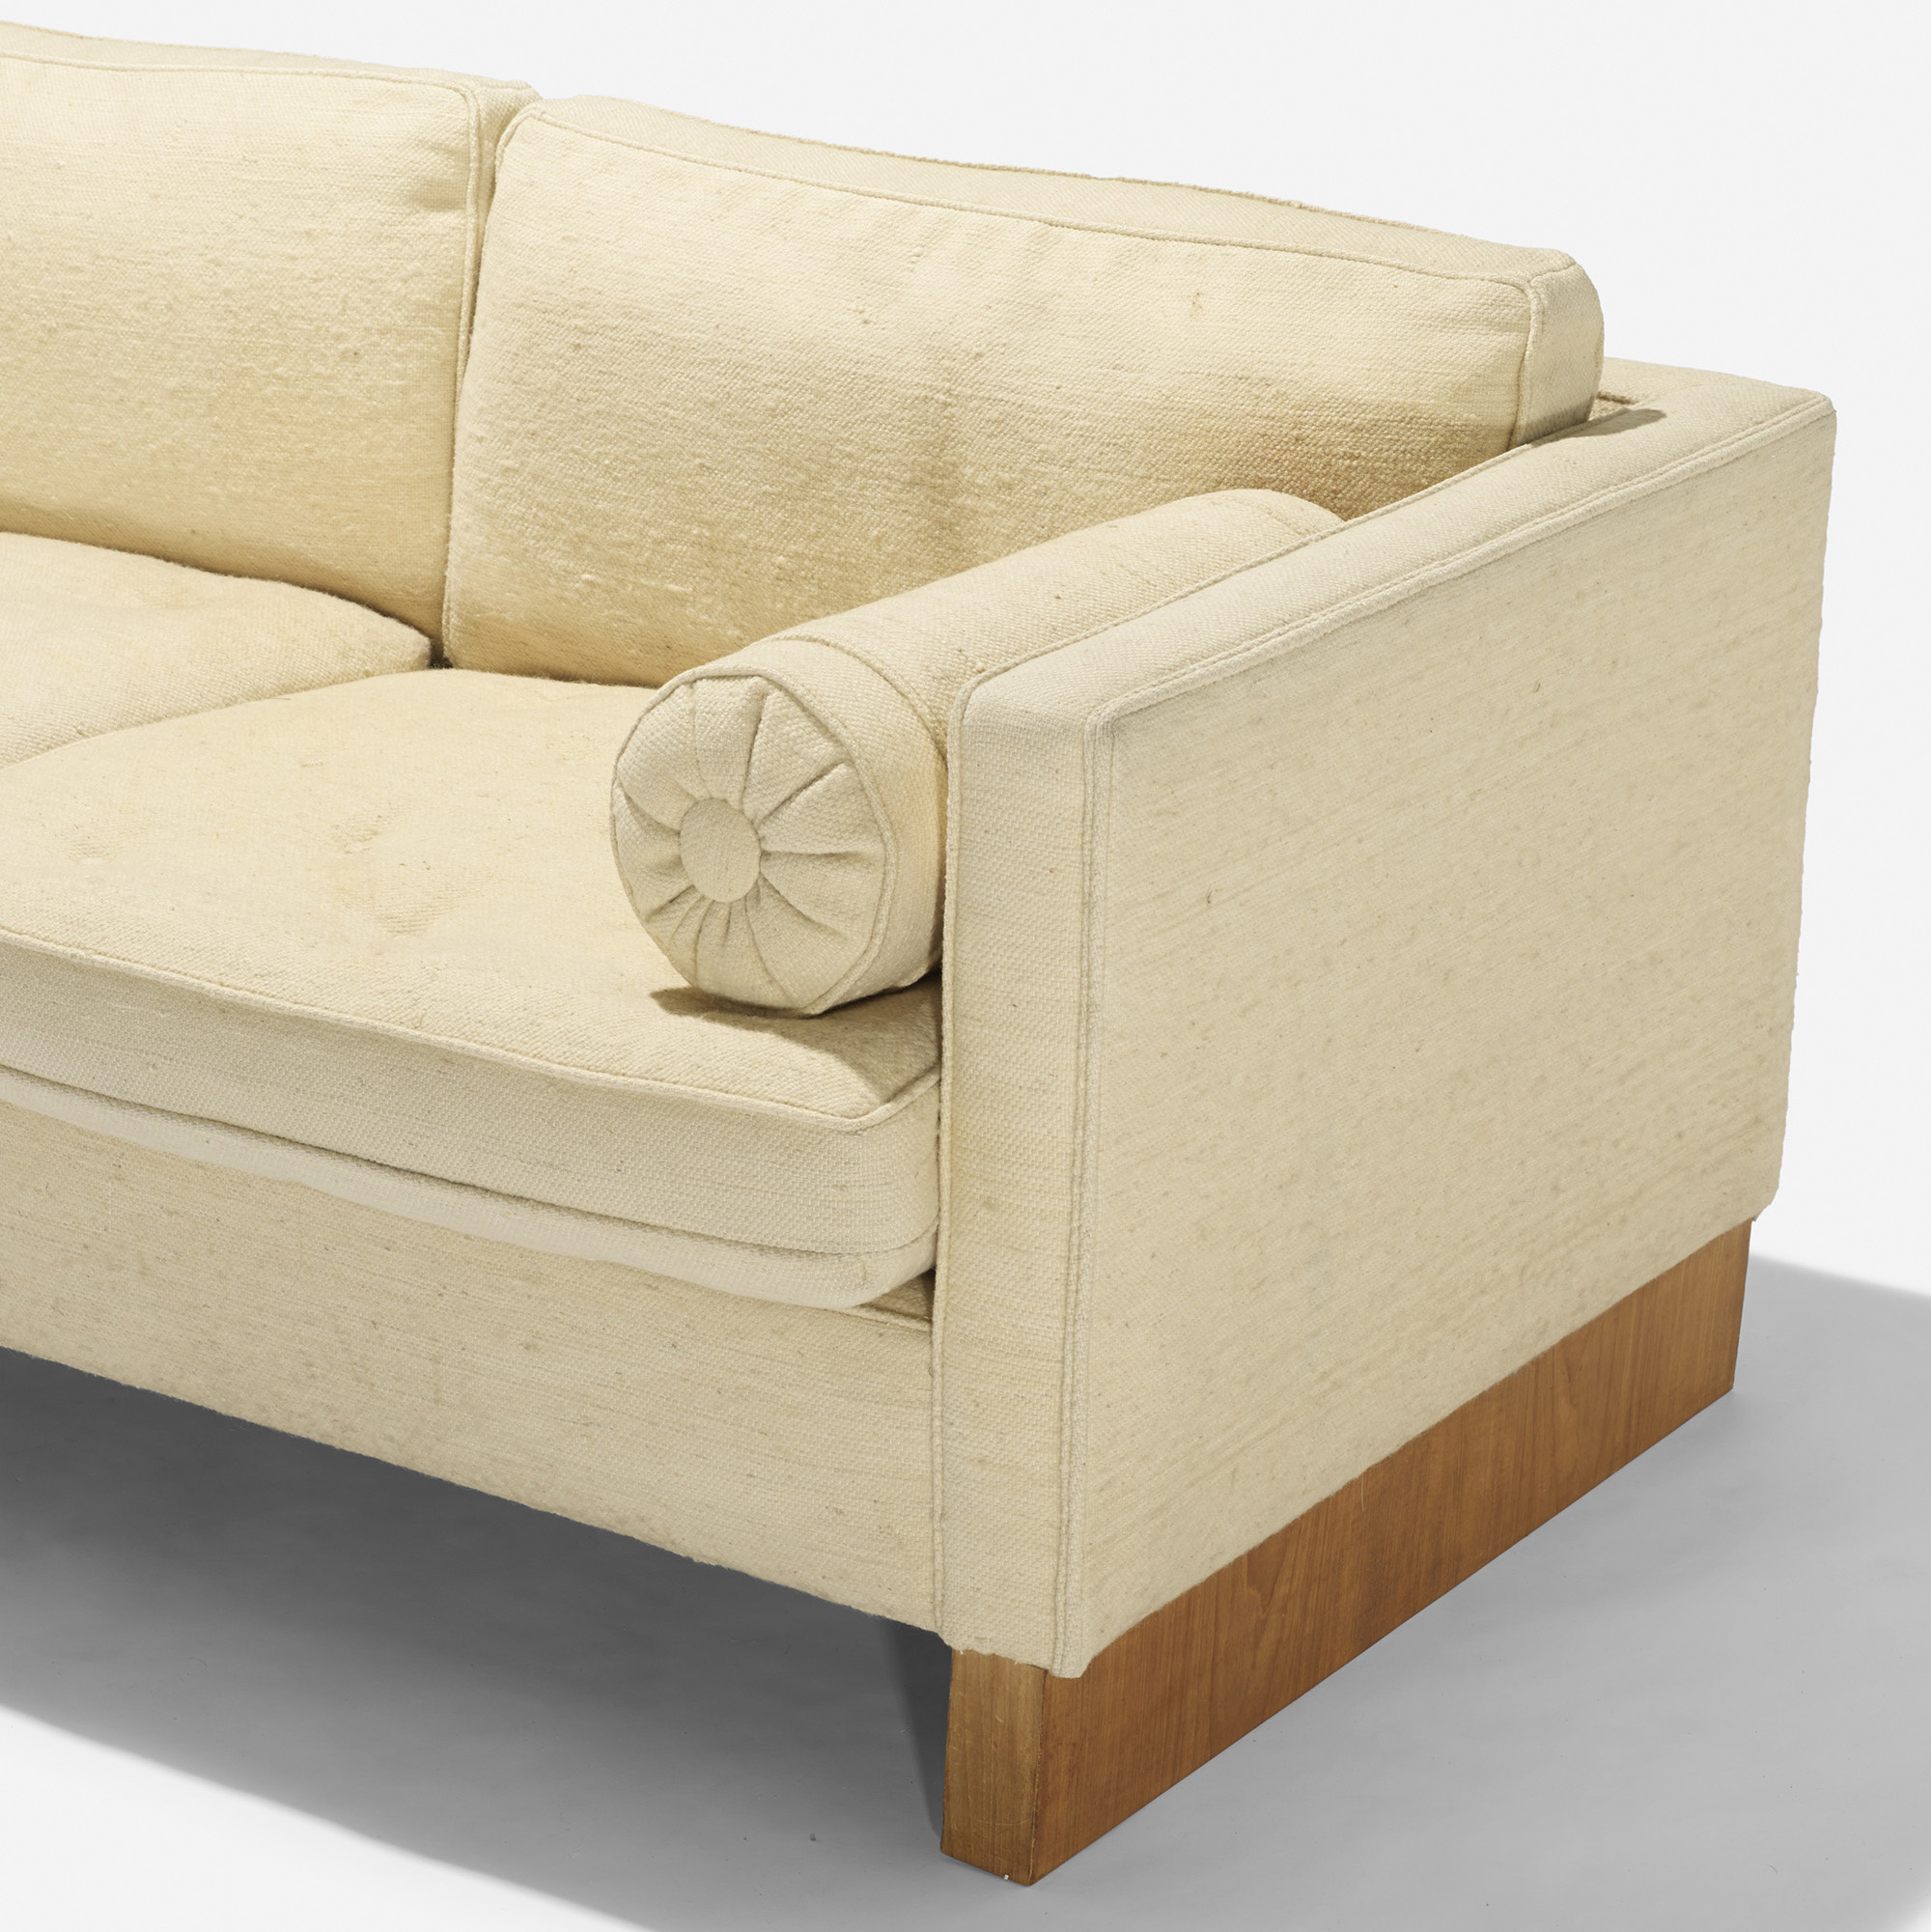 522 Ludwig Mies Van Der Rohe Sofa From 860 Lake Shore